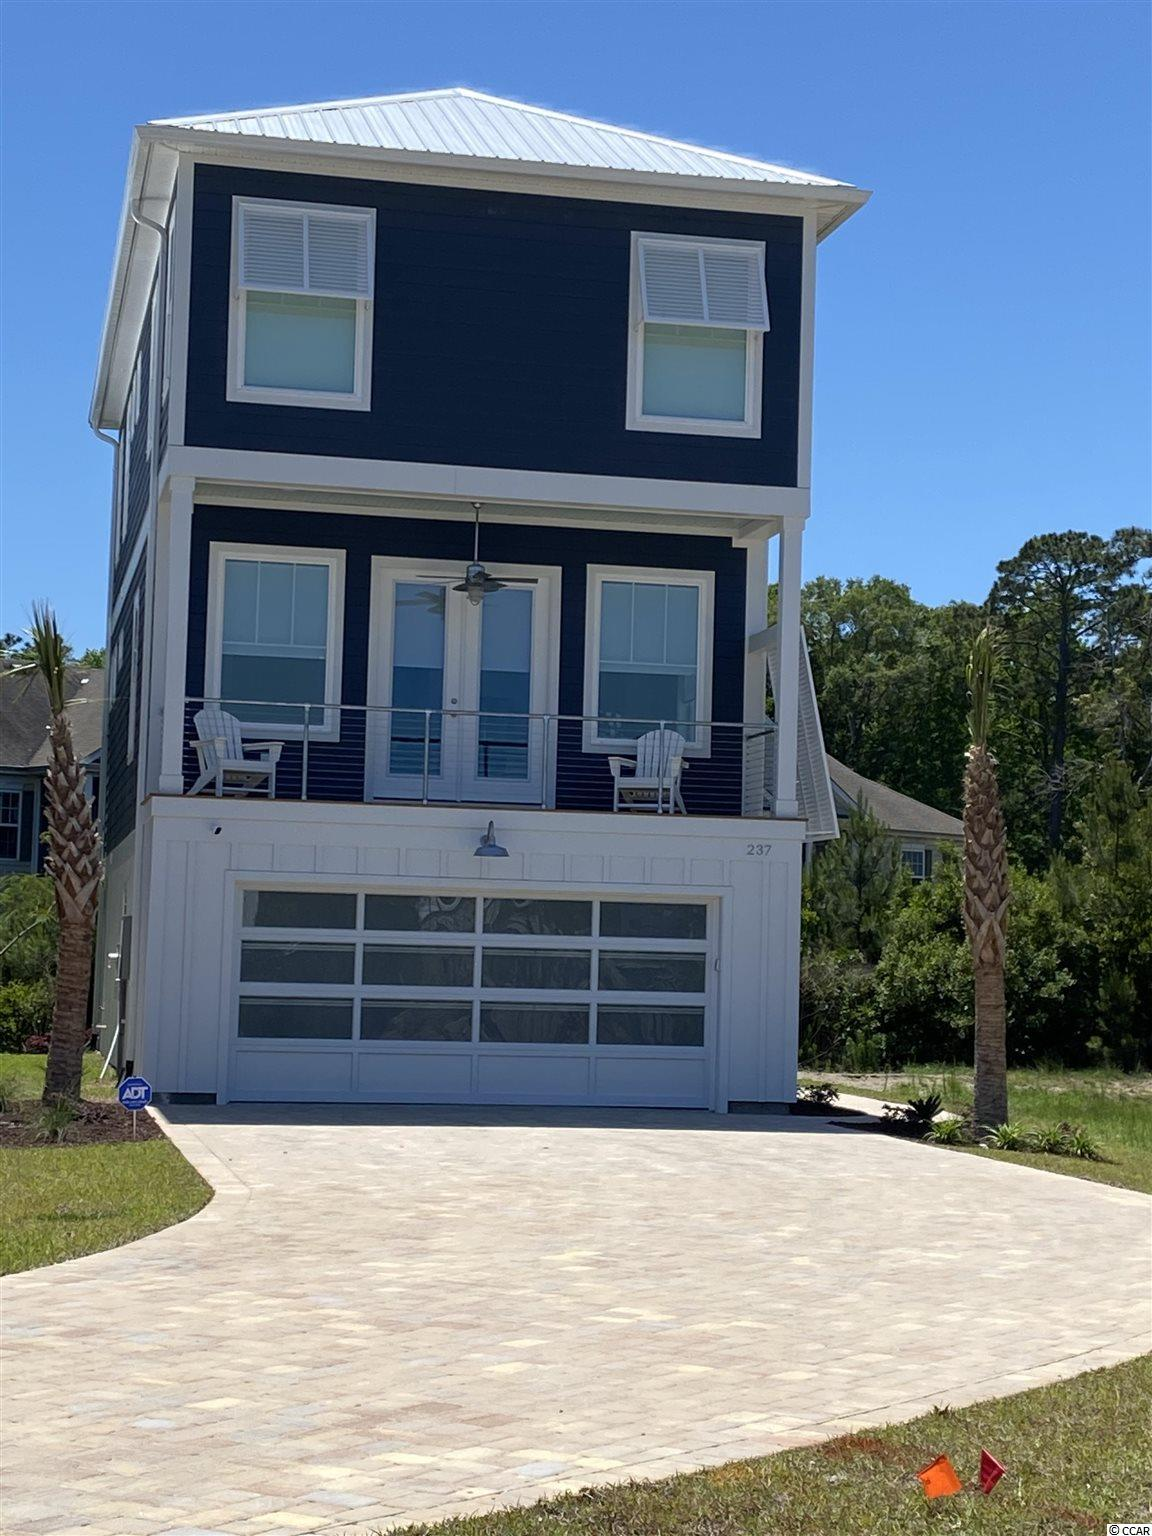 Raising The Pawleys Island Lifestyle to A Whole New Level!  Clam Bake Cove features 33 homes within a planned community.  3 bedrooms, 3 baths with garage and elevator featuring a contemporary coastal style defined by clean, smooth and subtle lines with natural materials, textures and color hues of blue and aqua.  Yet it is juxtaposed by its industrial design showcasing open spaces, high ceilings and neutral tones along with wood and metal utilitarian objects - a bit of edgy hardness with a modern coastal flare.  With low maintenance, the overall convenience and affordability of this community is hard to compare.  Located in the Center of everything!!!!  East side of 17!   Completion date March, 2019.  Photos are of on-site model. Partner is a S.C. licensed Realtor.